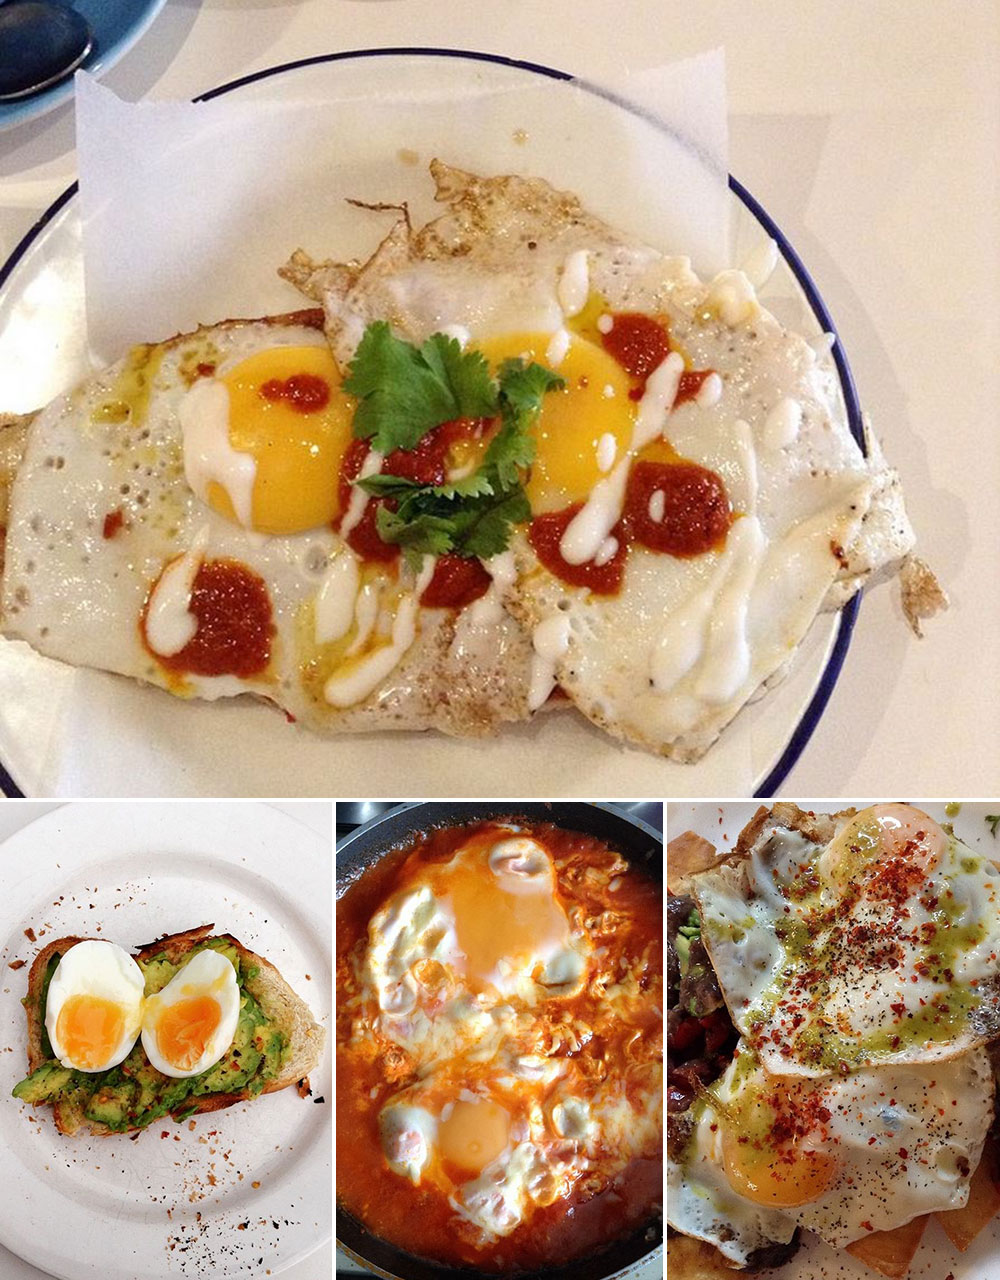 26 of the sexiest egg recipes known to man